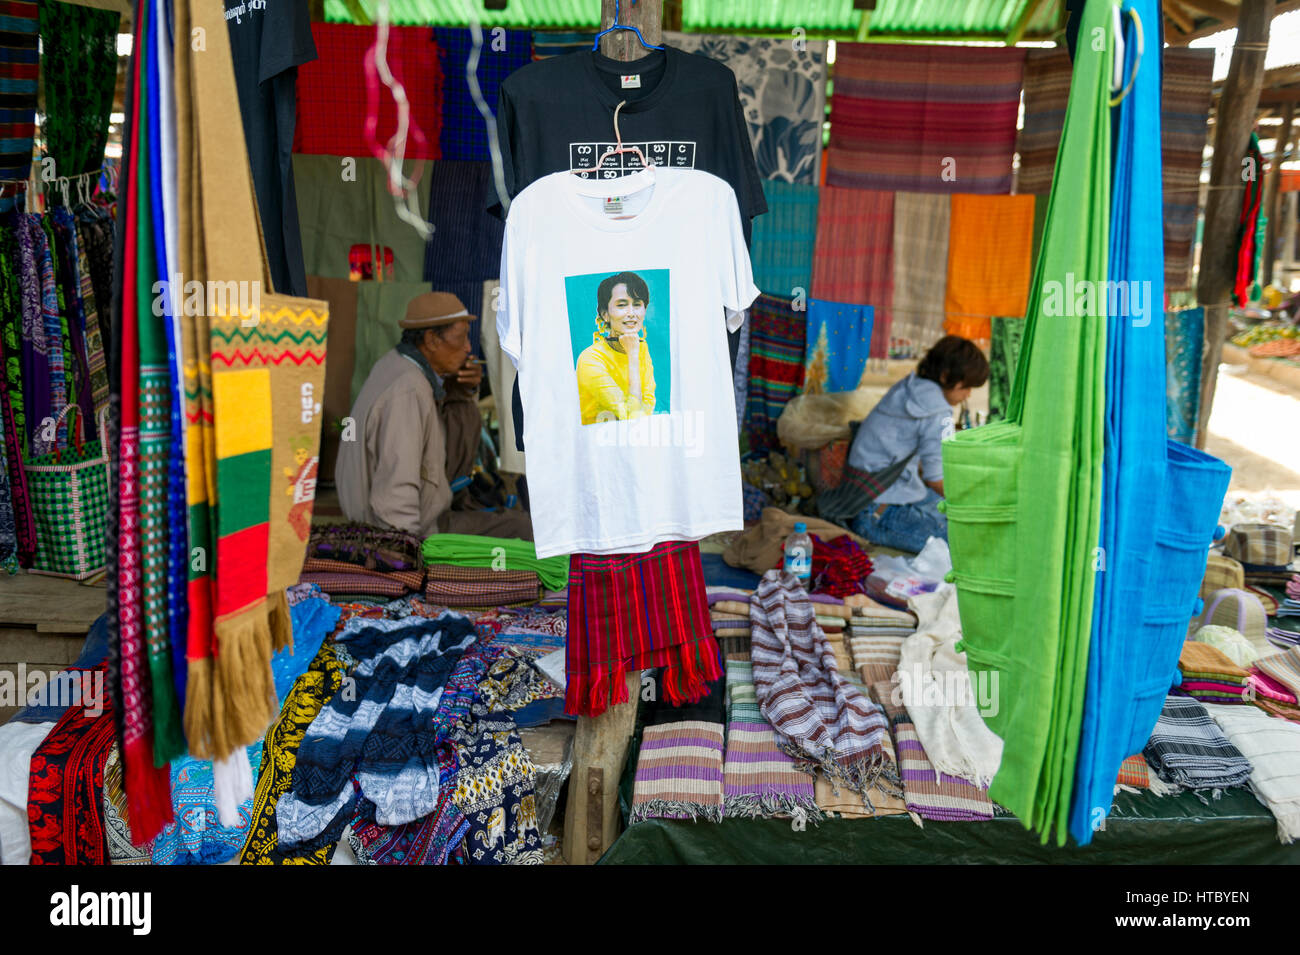 Myanmar (ex Birmanie). Inle lake. Shan state. Market day in the village. Tee-shirt with the image of Aung San Suu - Stock Image